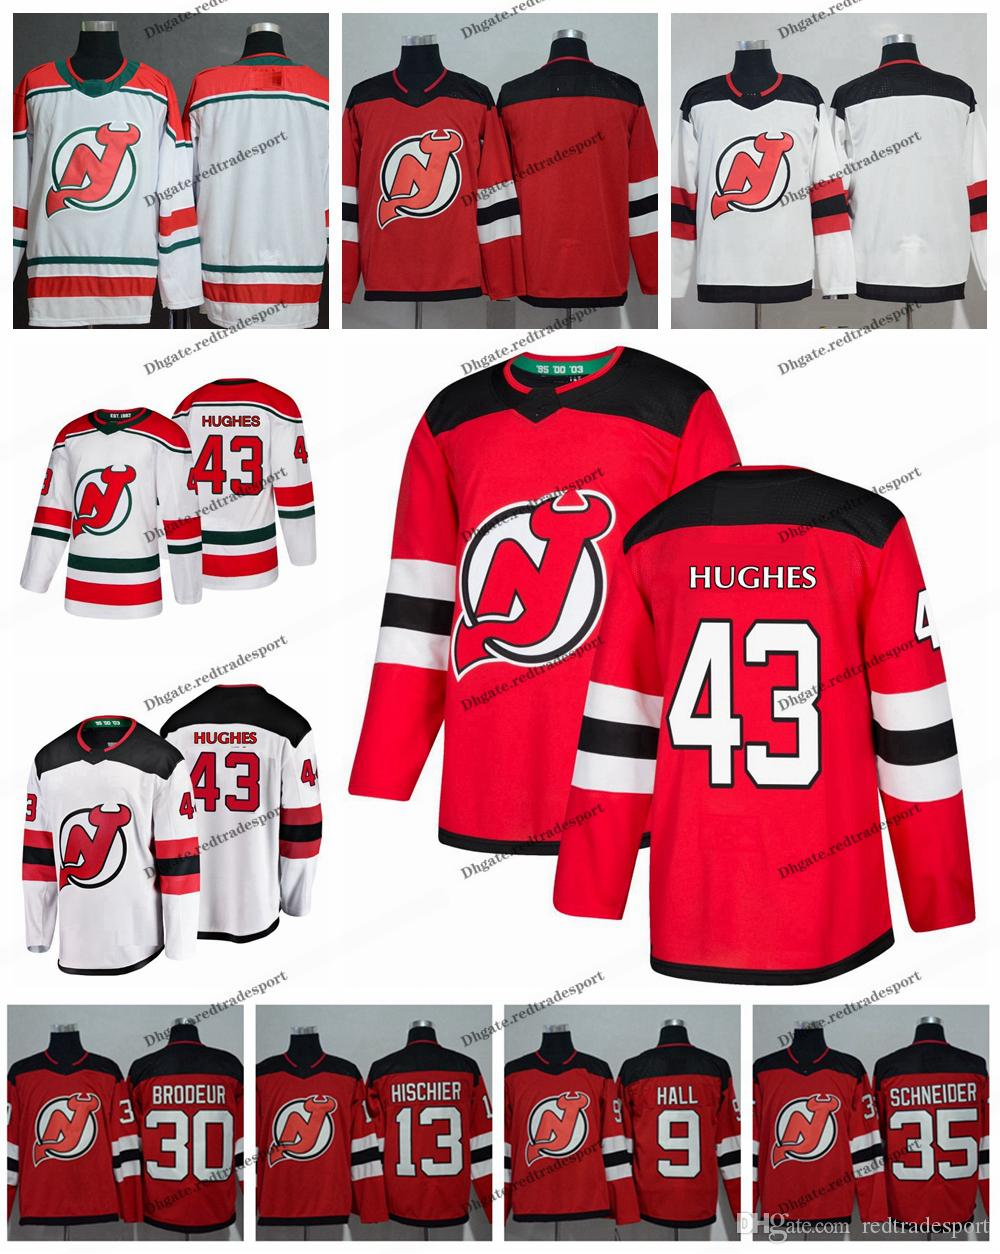 2019 New Jersey Devils First Draft 43 Jack Hughes 9 Taylor Hall 30 Martin  Brodeur 35 Cory Schneider 13 Nico Hischier Hockey Jerseys A Patch